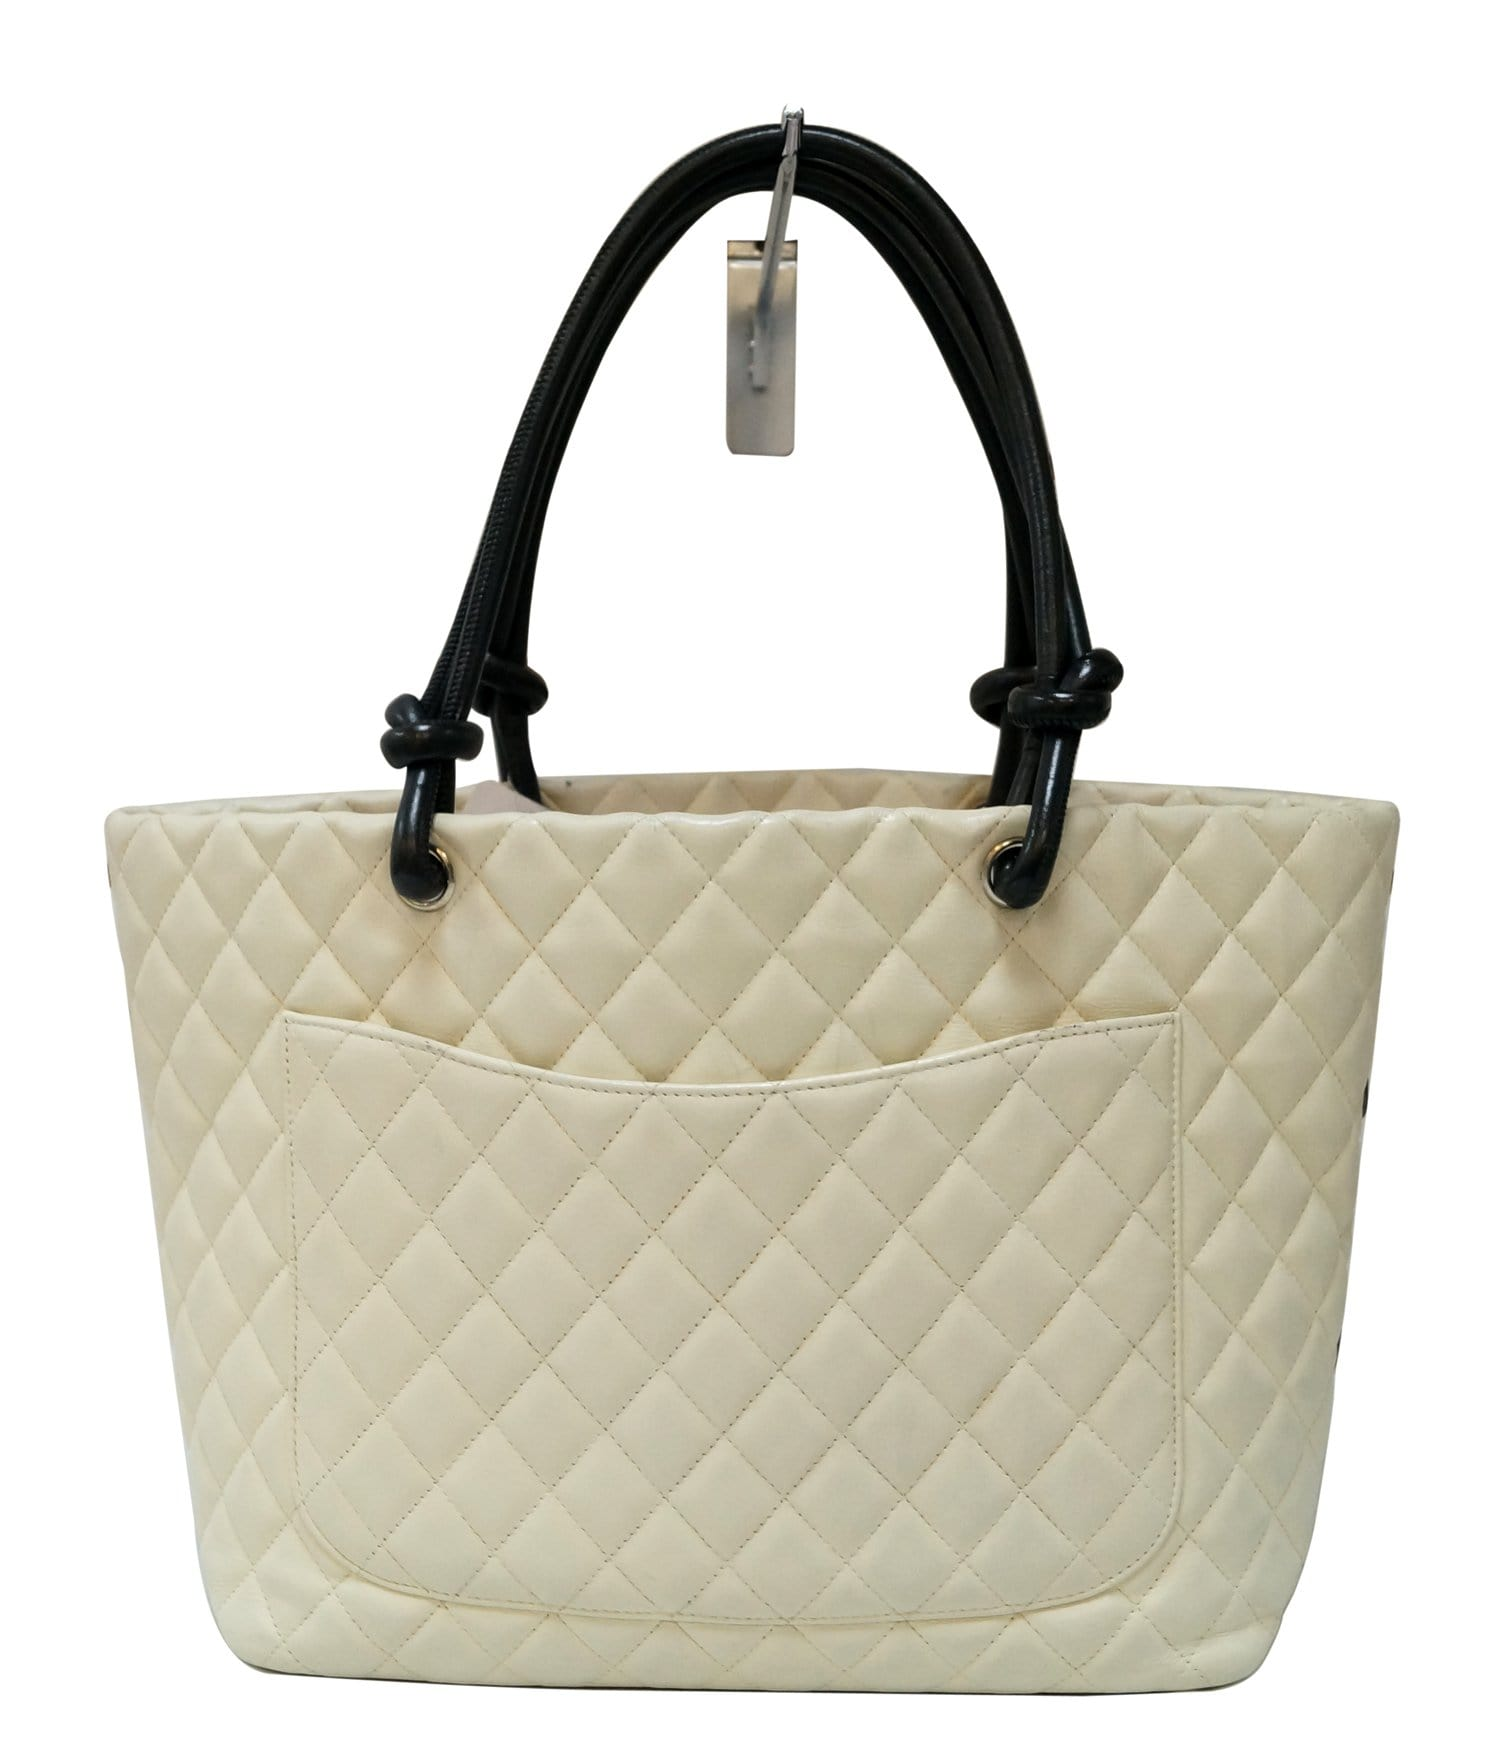 a7bbd2e93c4708 CHANEL White Quilted Leather Ligne Cambon Tote Bag